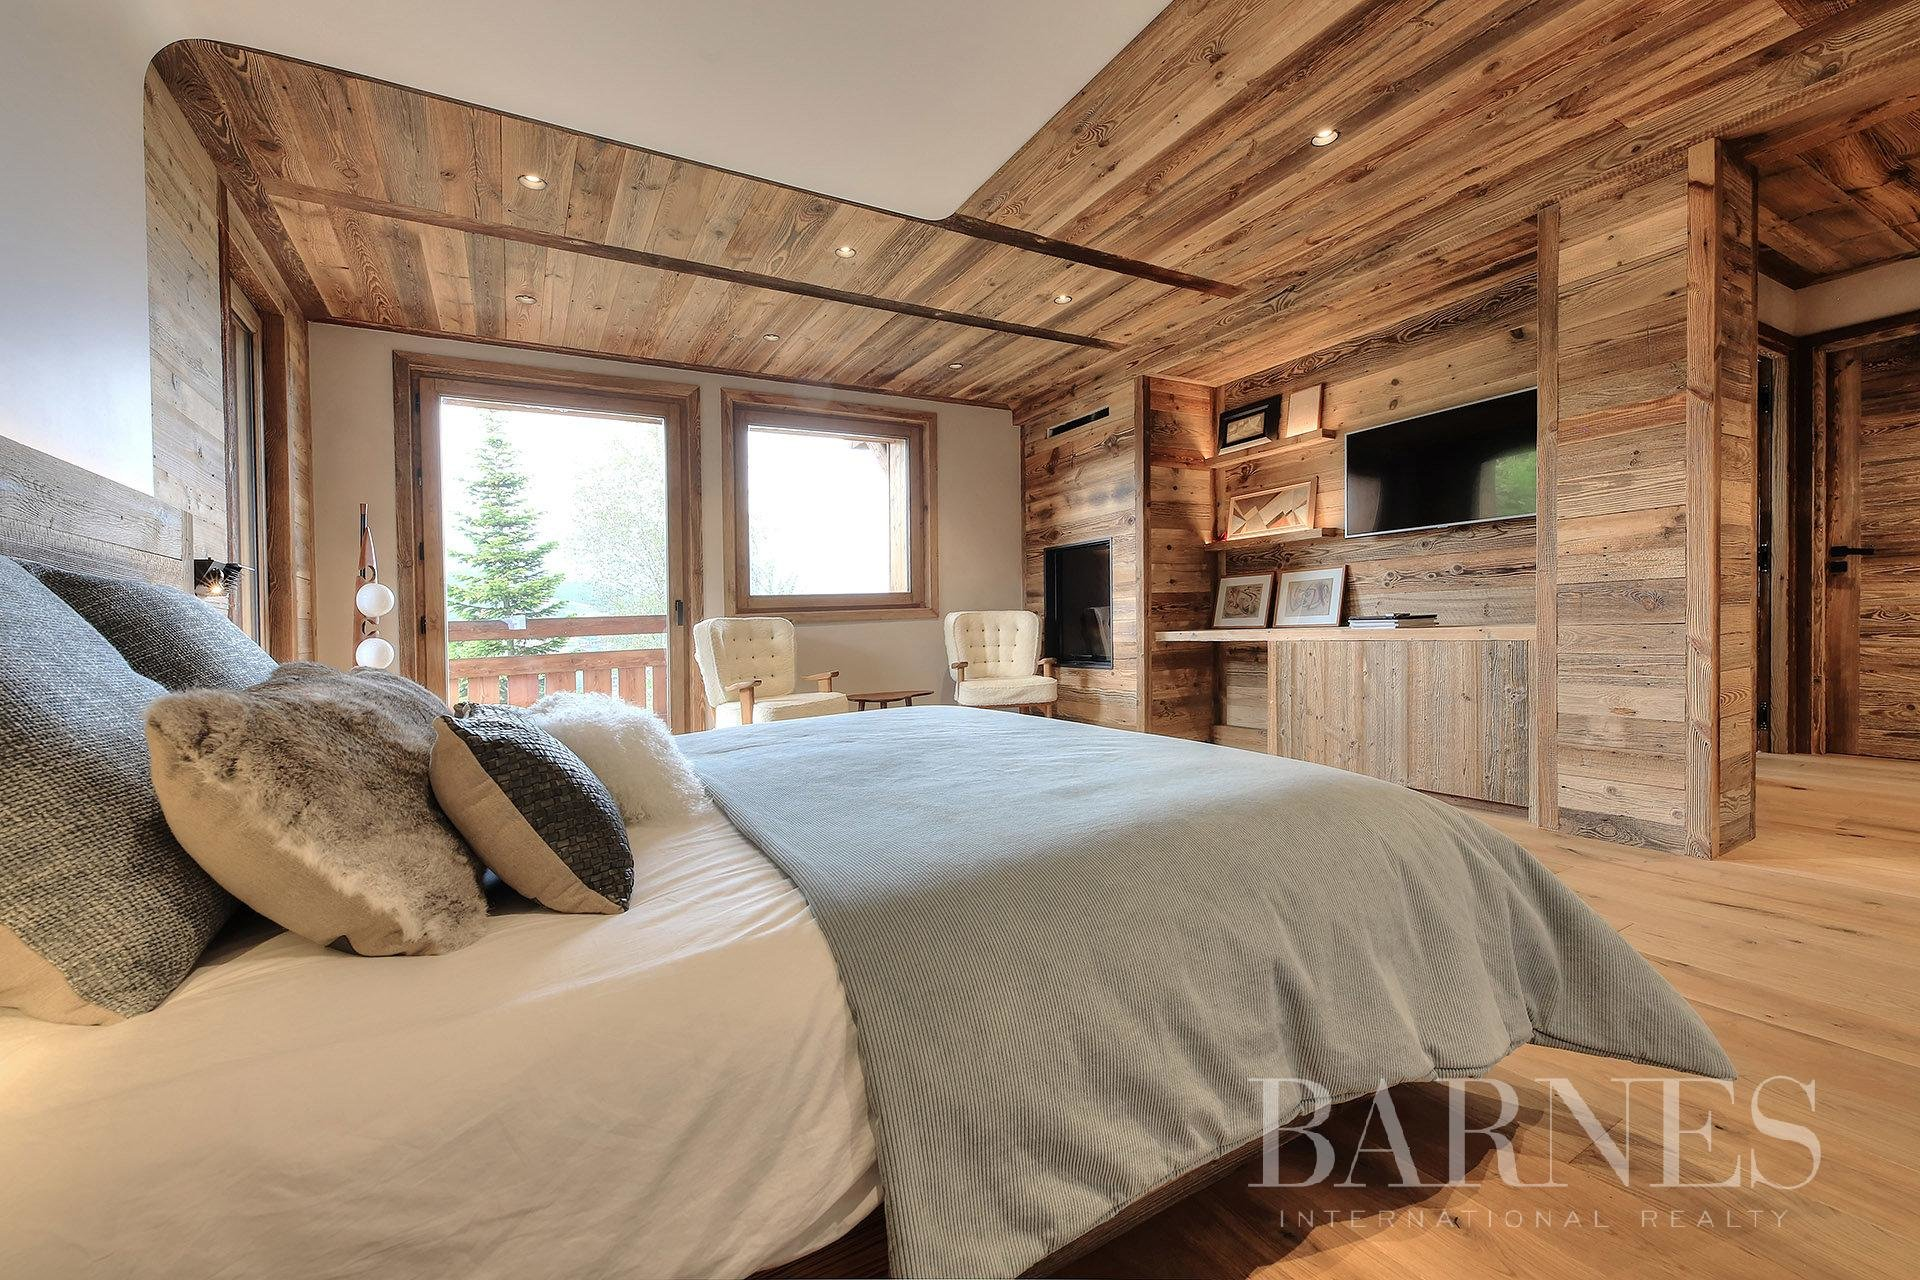 Photo of Chalet ideally situated along the ski slopes